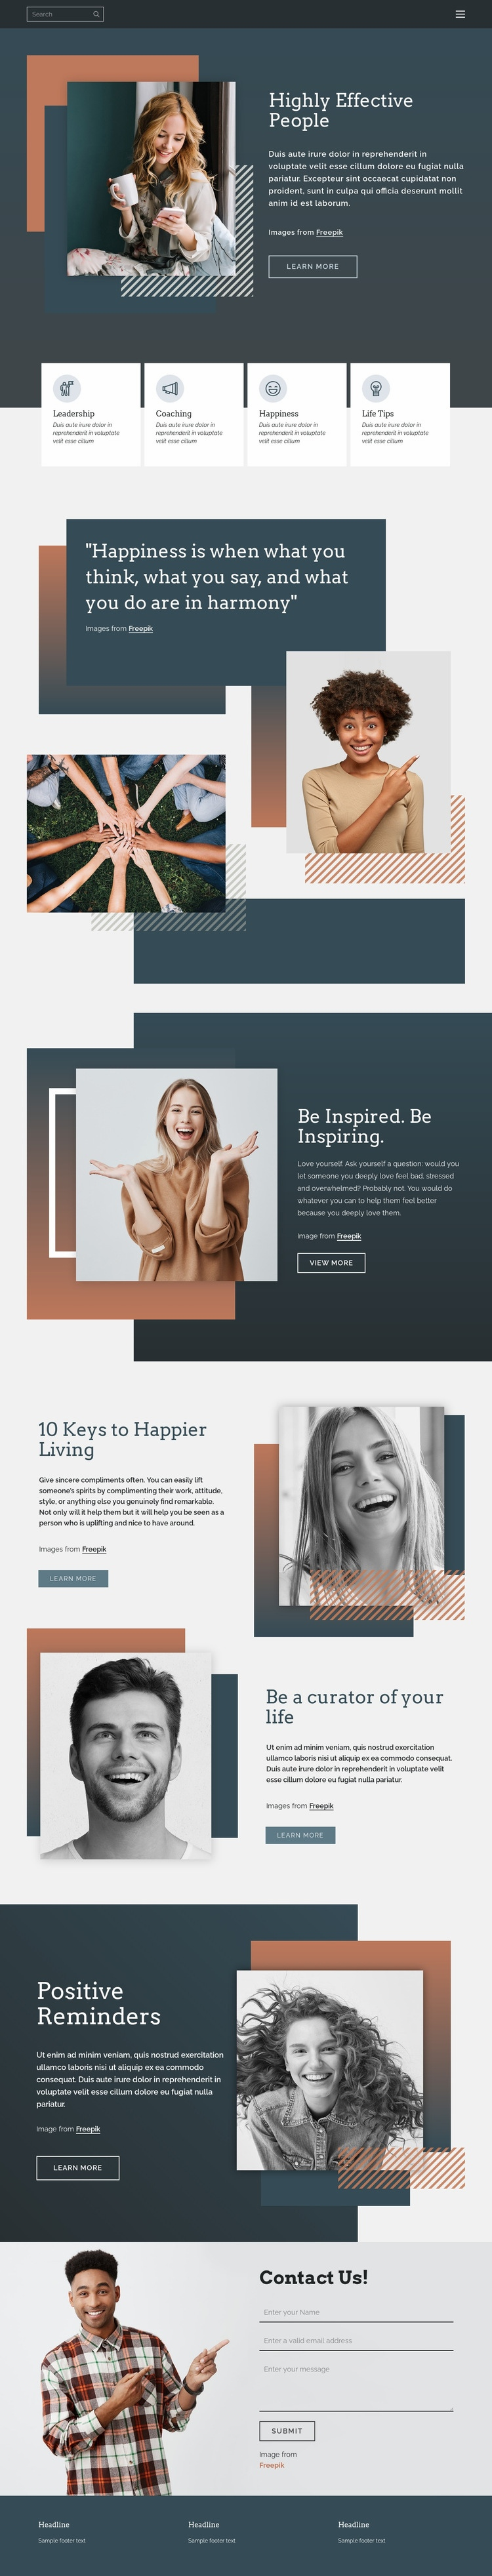 How to be successful in life Web Page Designer